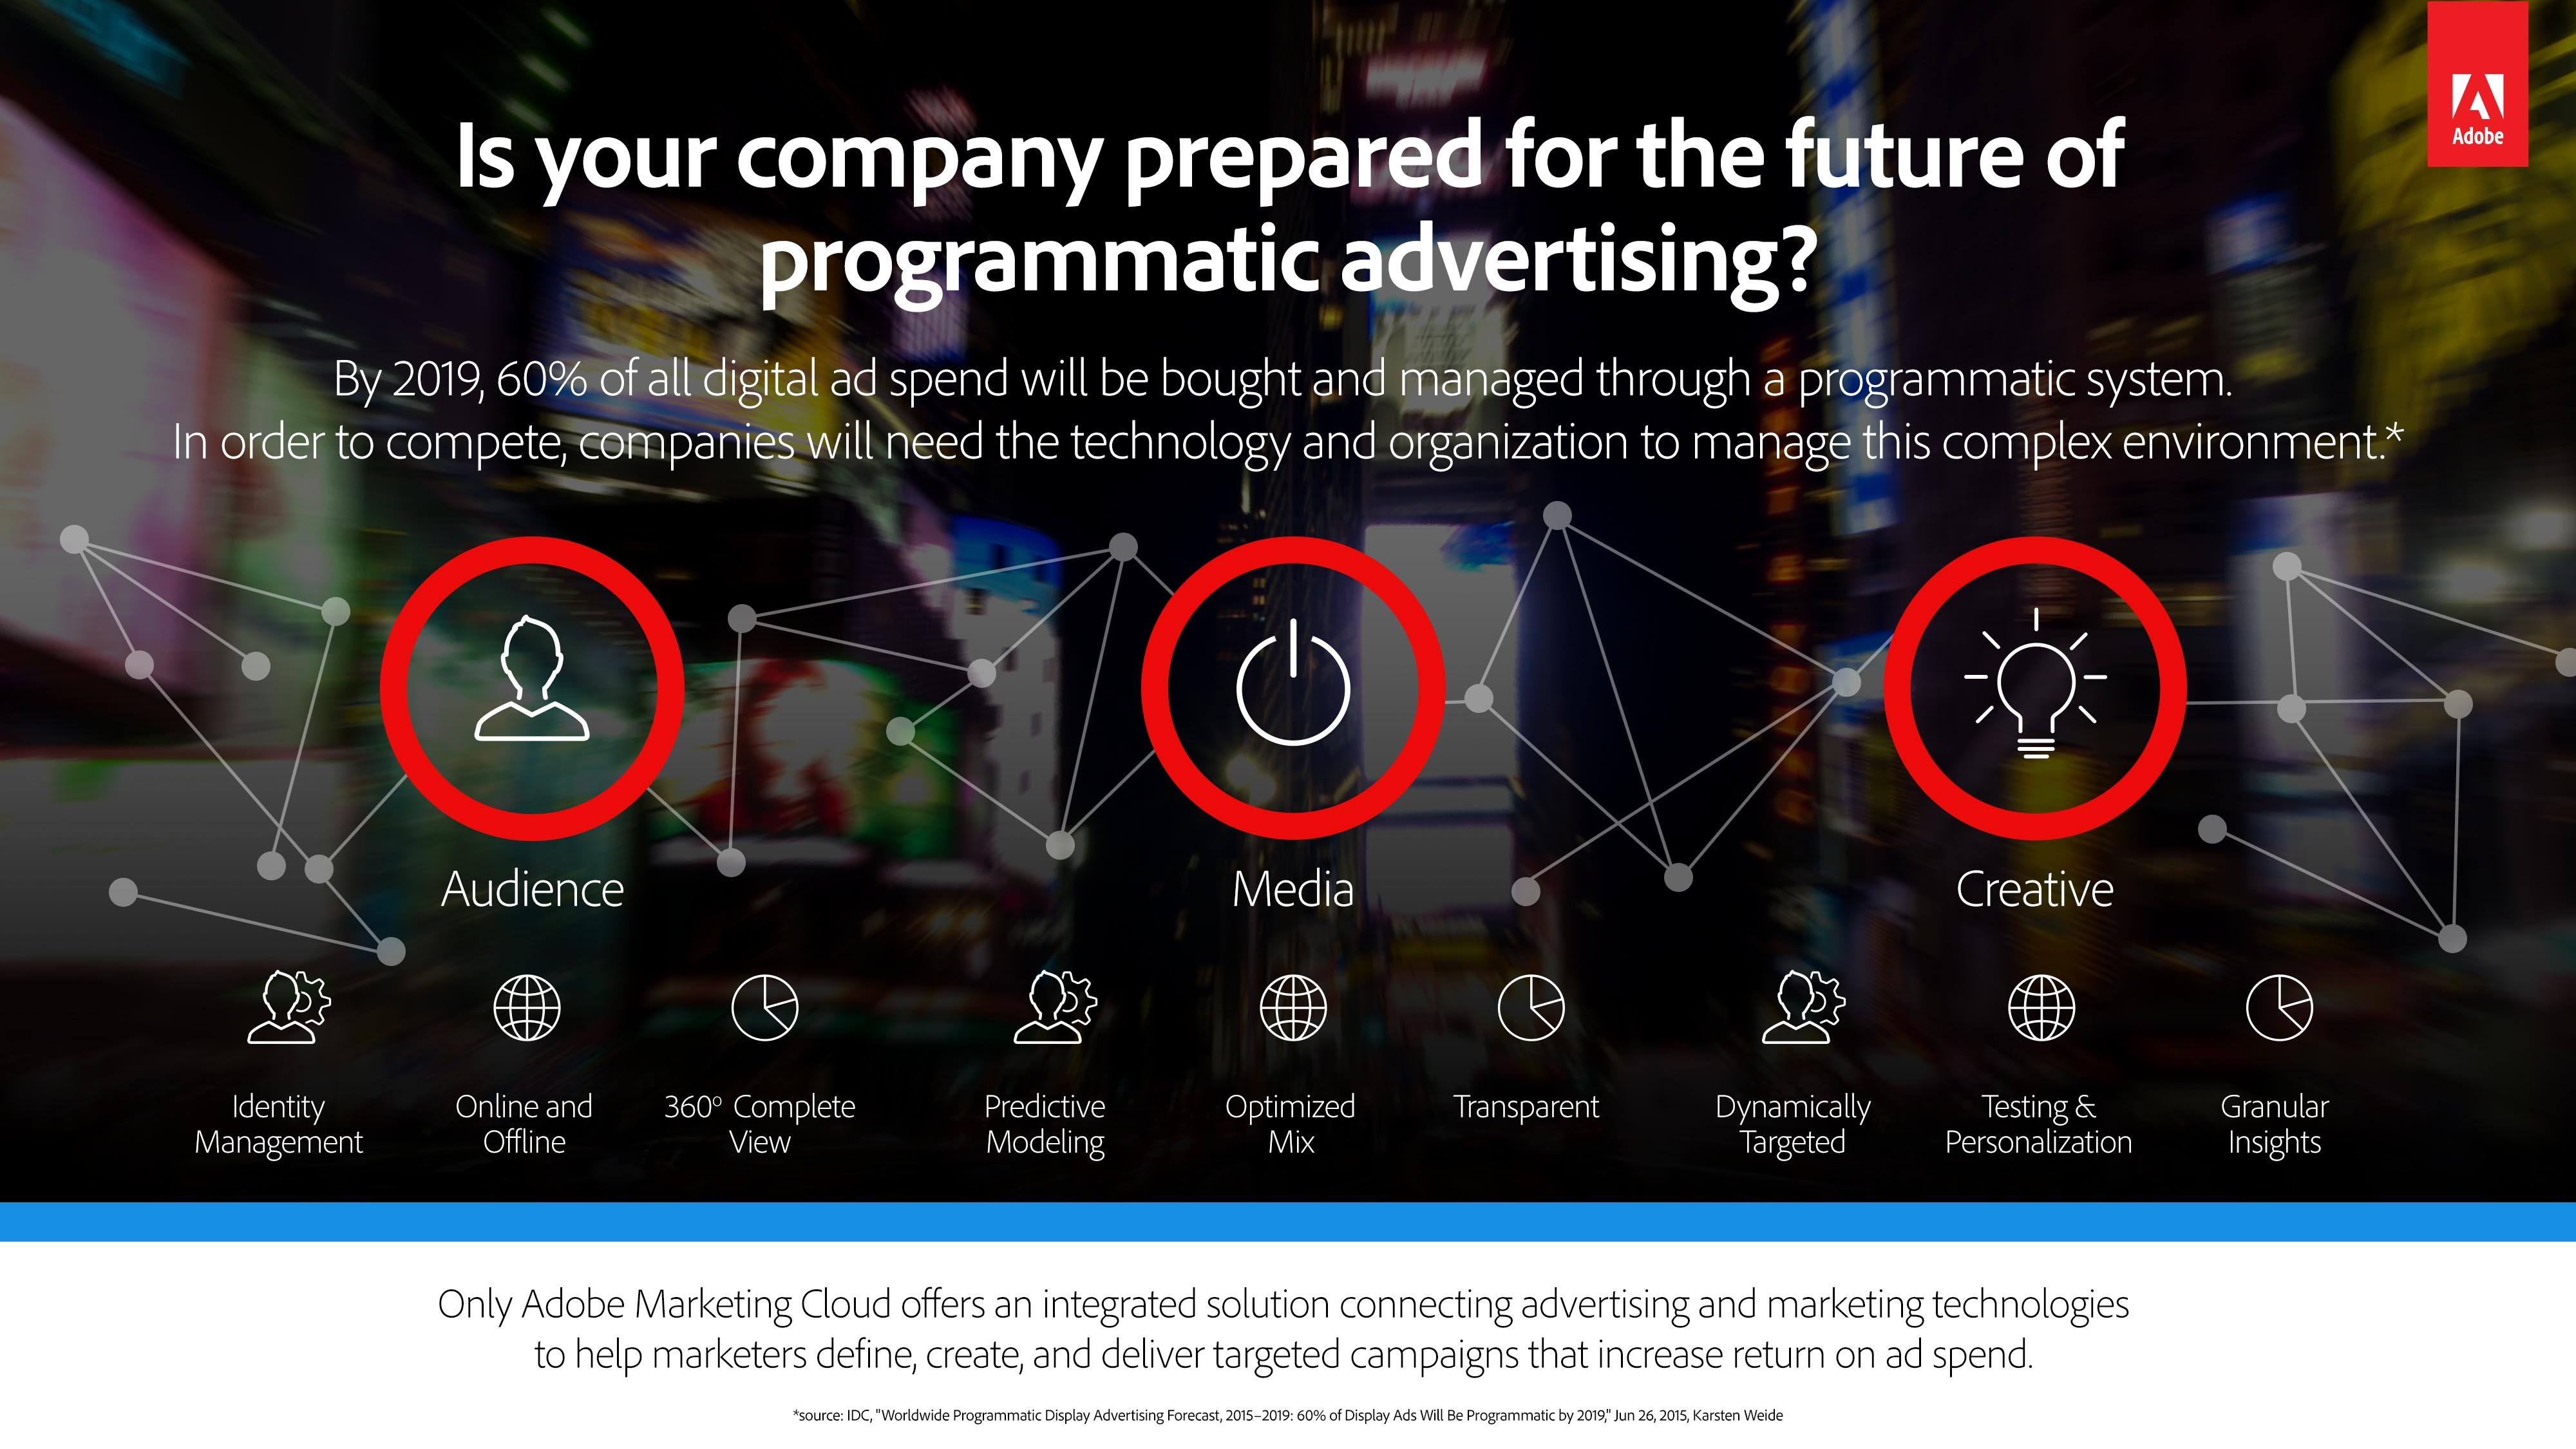 Adobe Unveils Industry's Most Advanced Programmatic